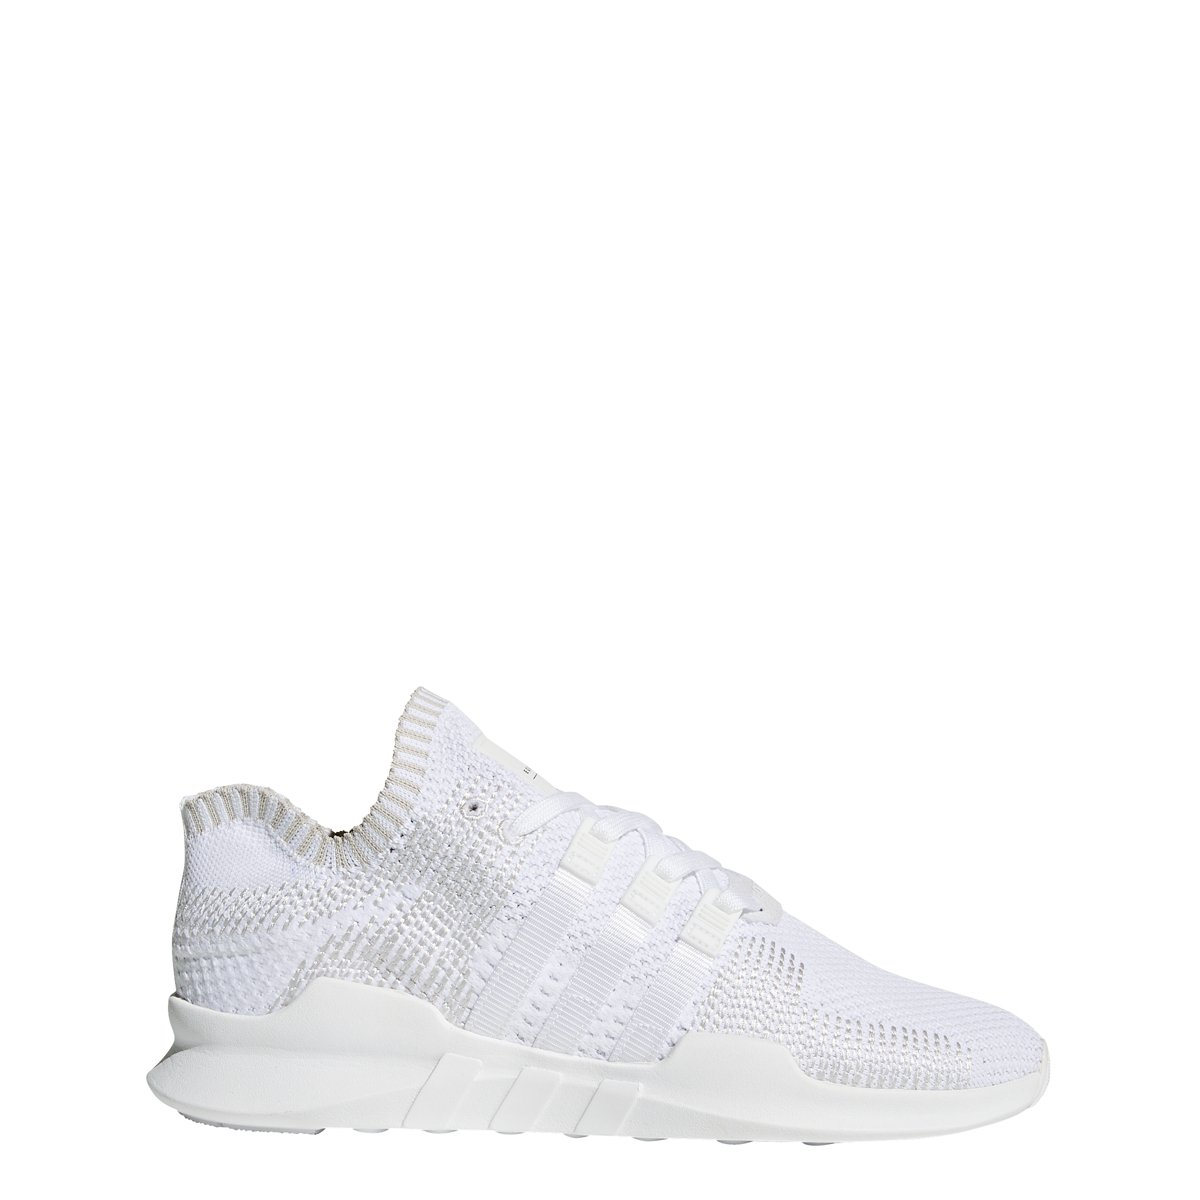 cheap for discount 72cb1 b4e09 Galleon - Adidas BY9391 Men EQT Support ADV Primeknit FTWWHT ...